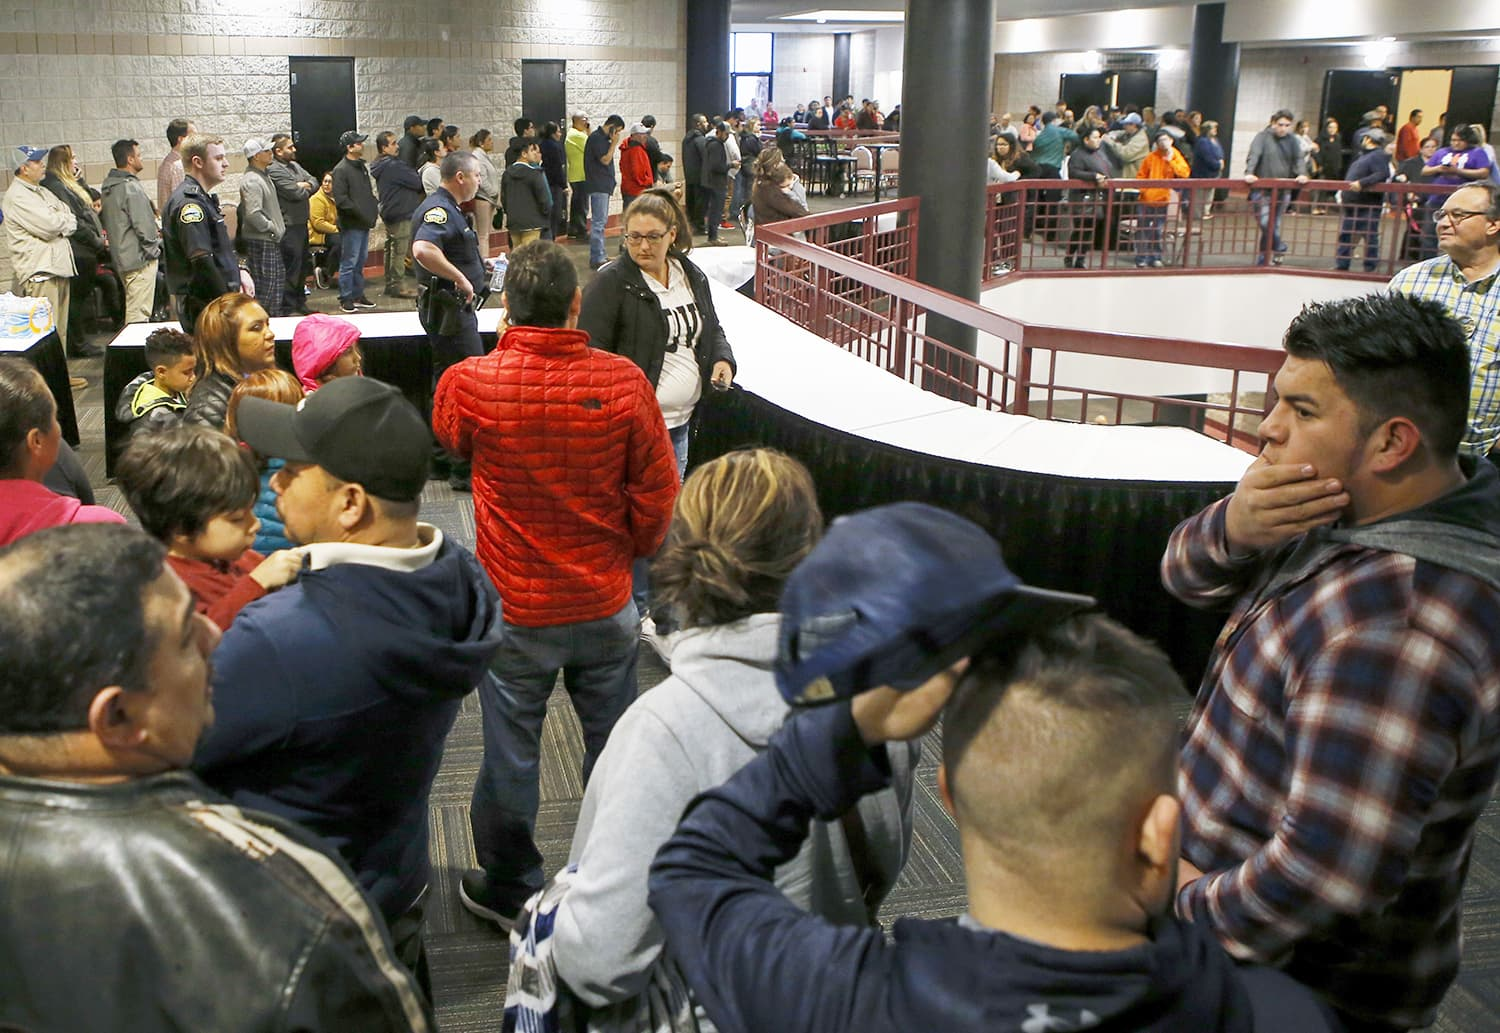 People lineup inside the Dalton Convention Center to pick up their children on Wednesday, Feb. 28, 2018, in Dalton, Ga. Students from Dalton High School were evacuated to the convention center after social studies teacher Randal Davidson barricaded himself in a classroom and fired a handgun, authorities said.  ─AP